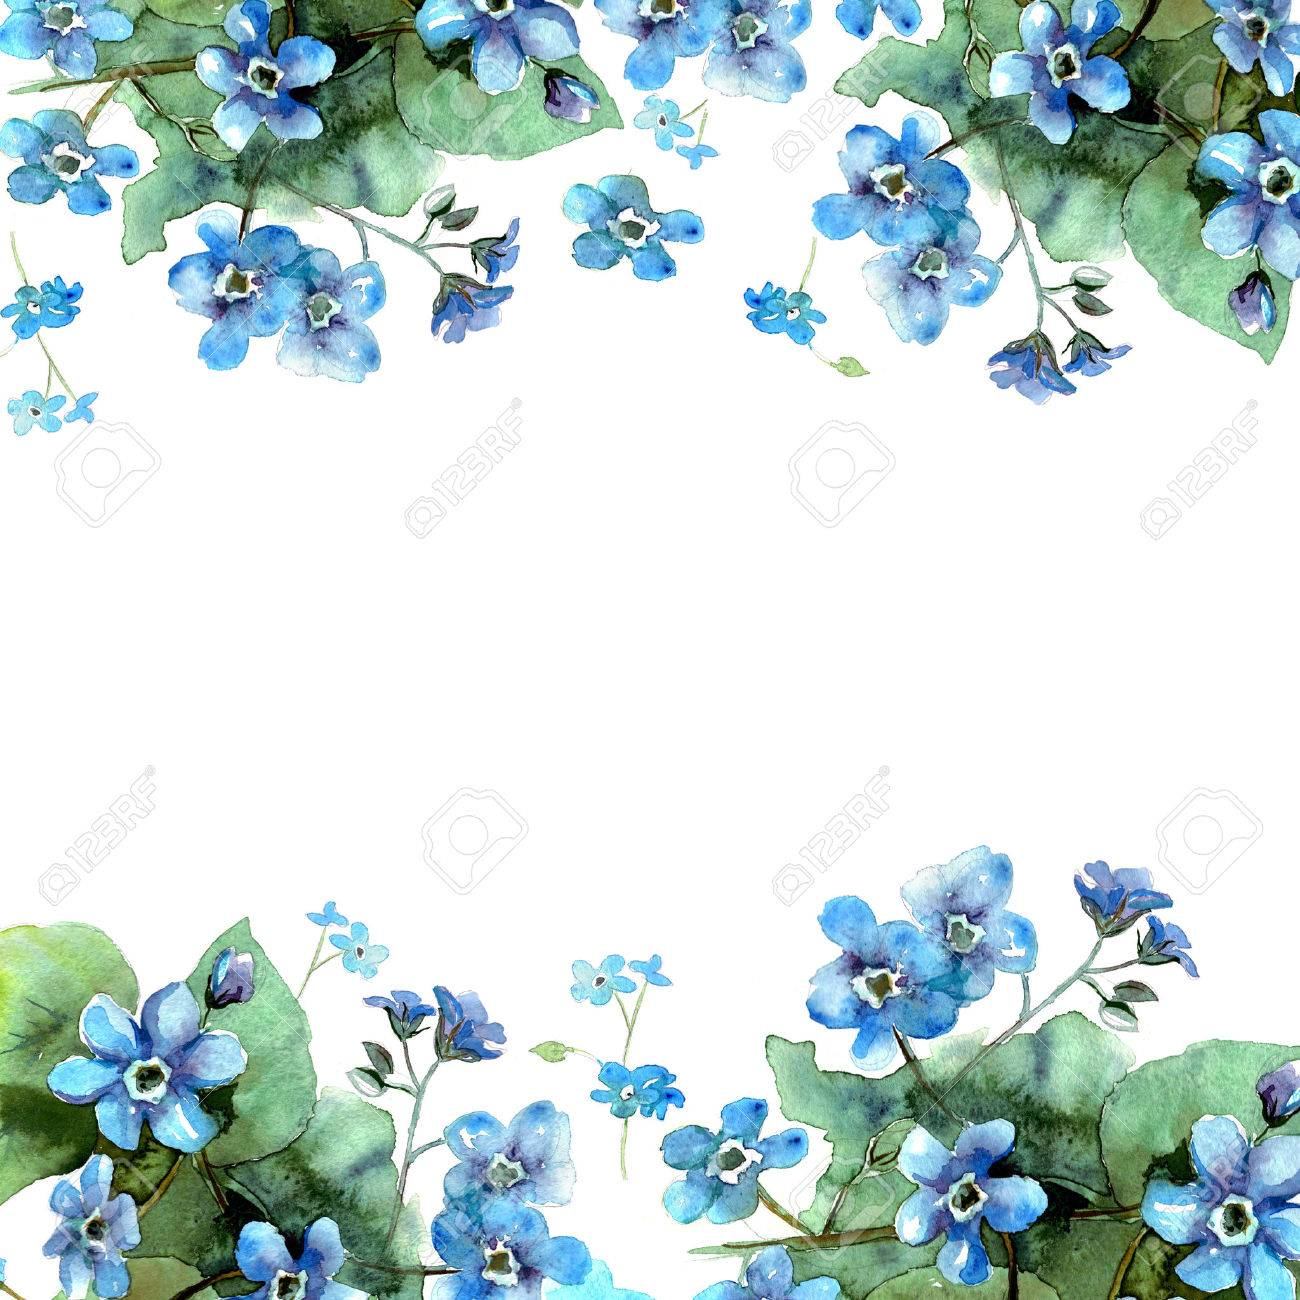 Cute Watercolor Flower Border Background With Blue Forget Me Nots Invitation Wedding